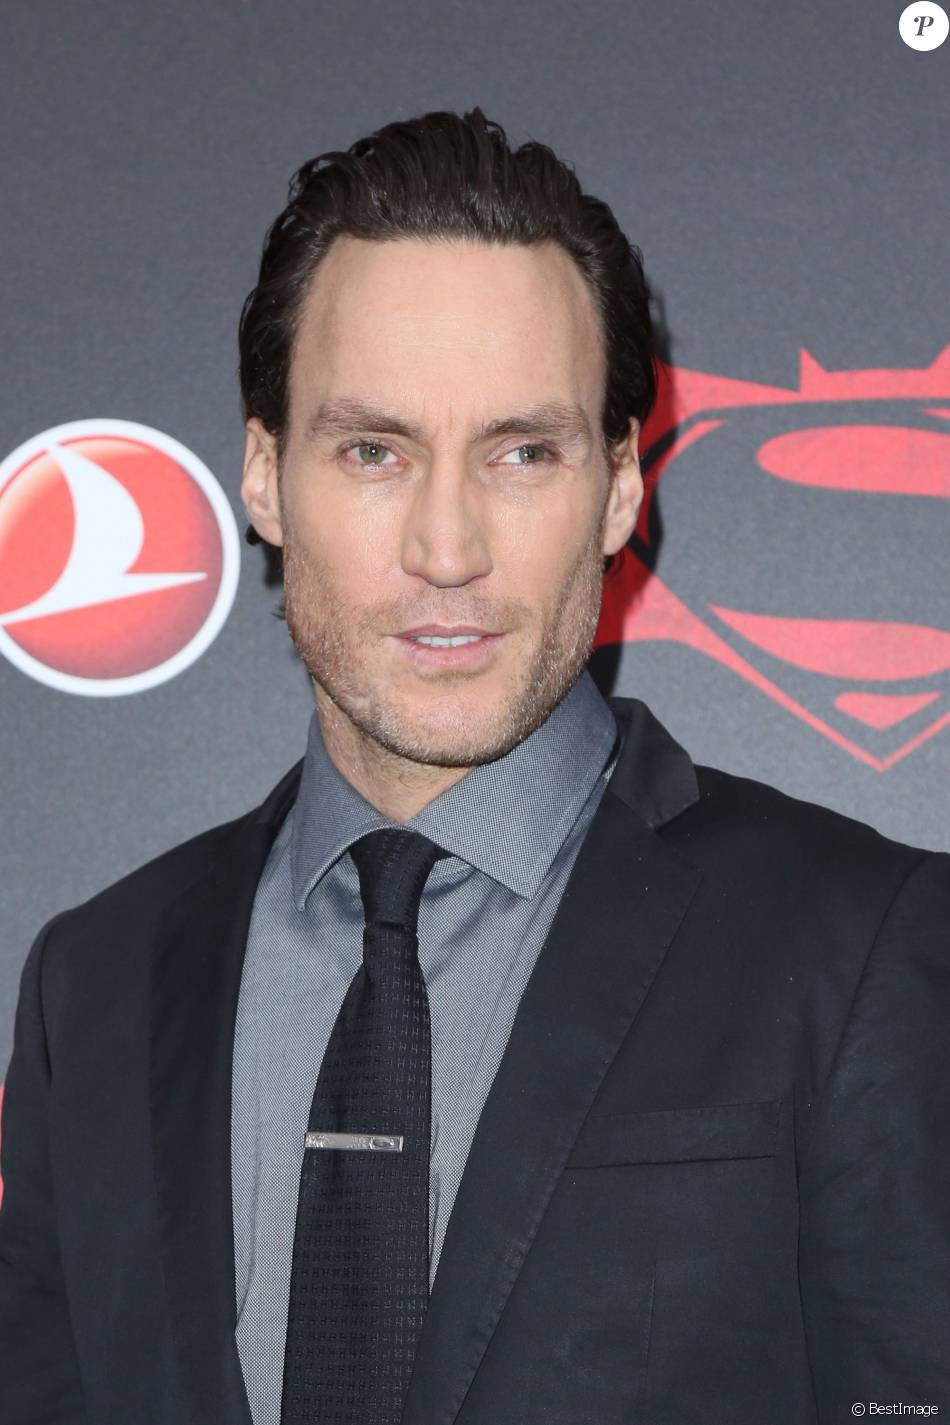 Callan Mulvey à la première de 'Batman V Superman: Dawn Of Justice' au Radio City Music Hall à New York, le 20 mars 2016 © Elizabeth Pantaleo/Bestimage